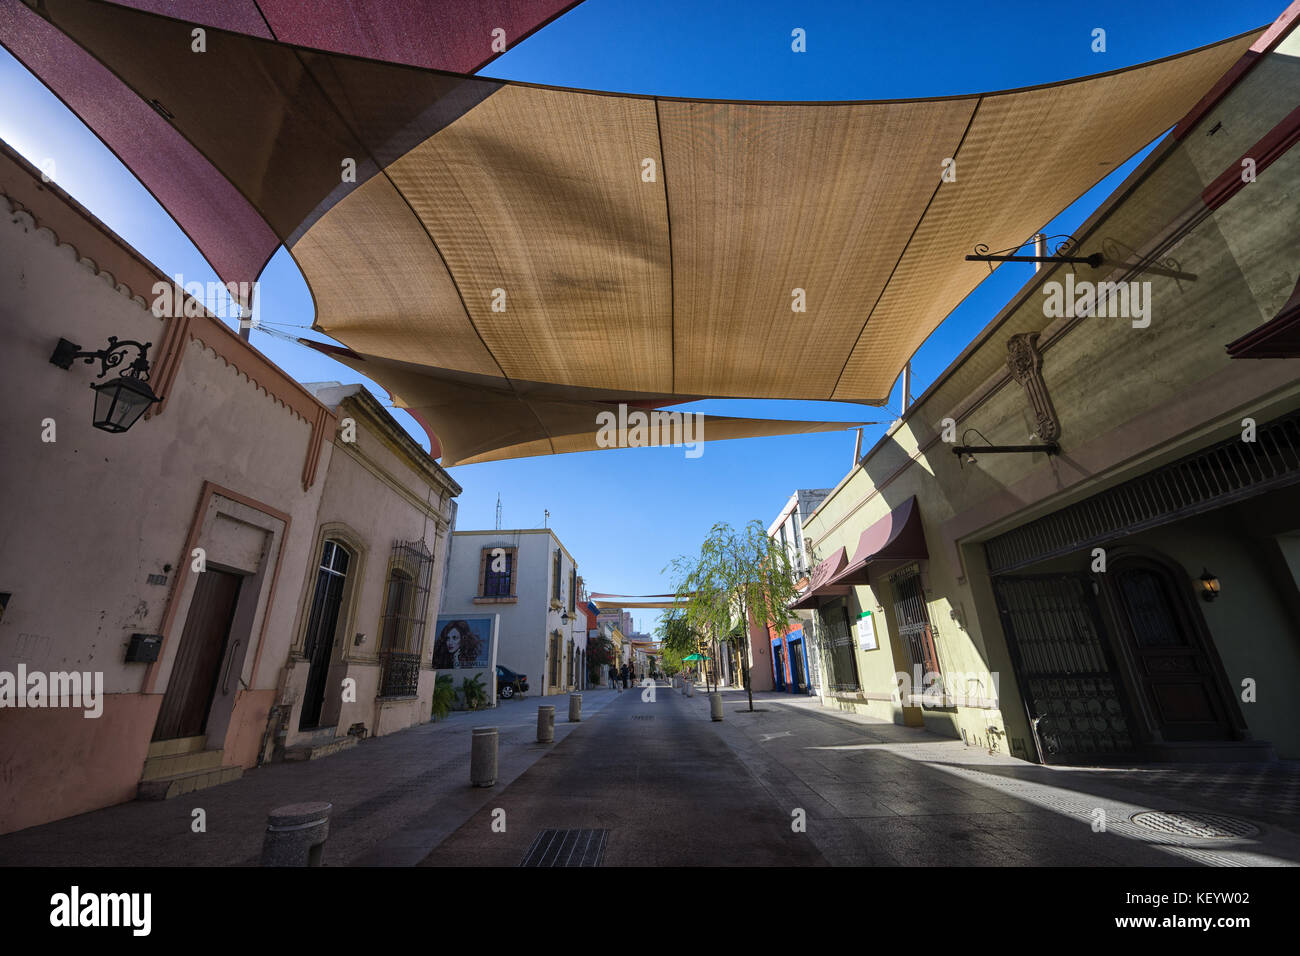 """January 16, 2016 Monterrey, Mexico: shade over the street in the historic old town called 'Barrio Antiguo"""" Stock Photo"""